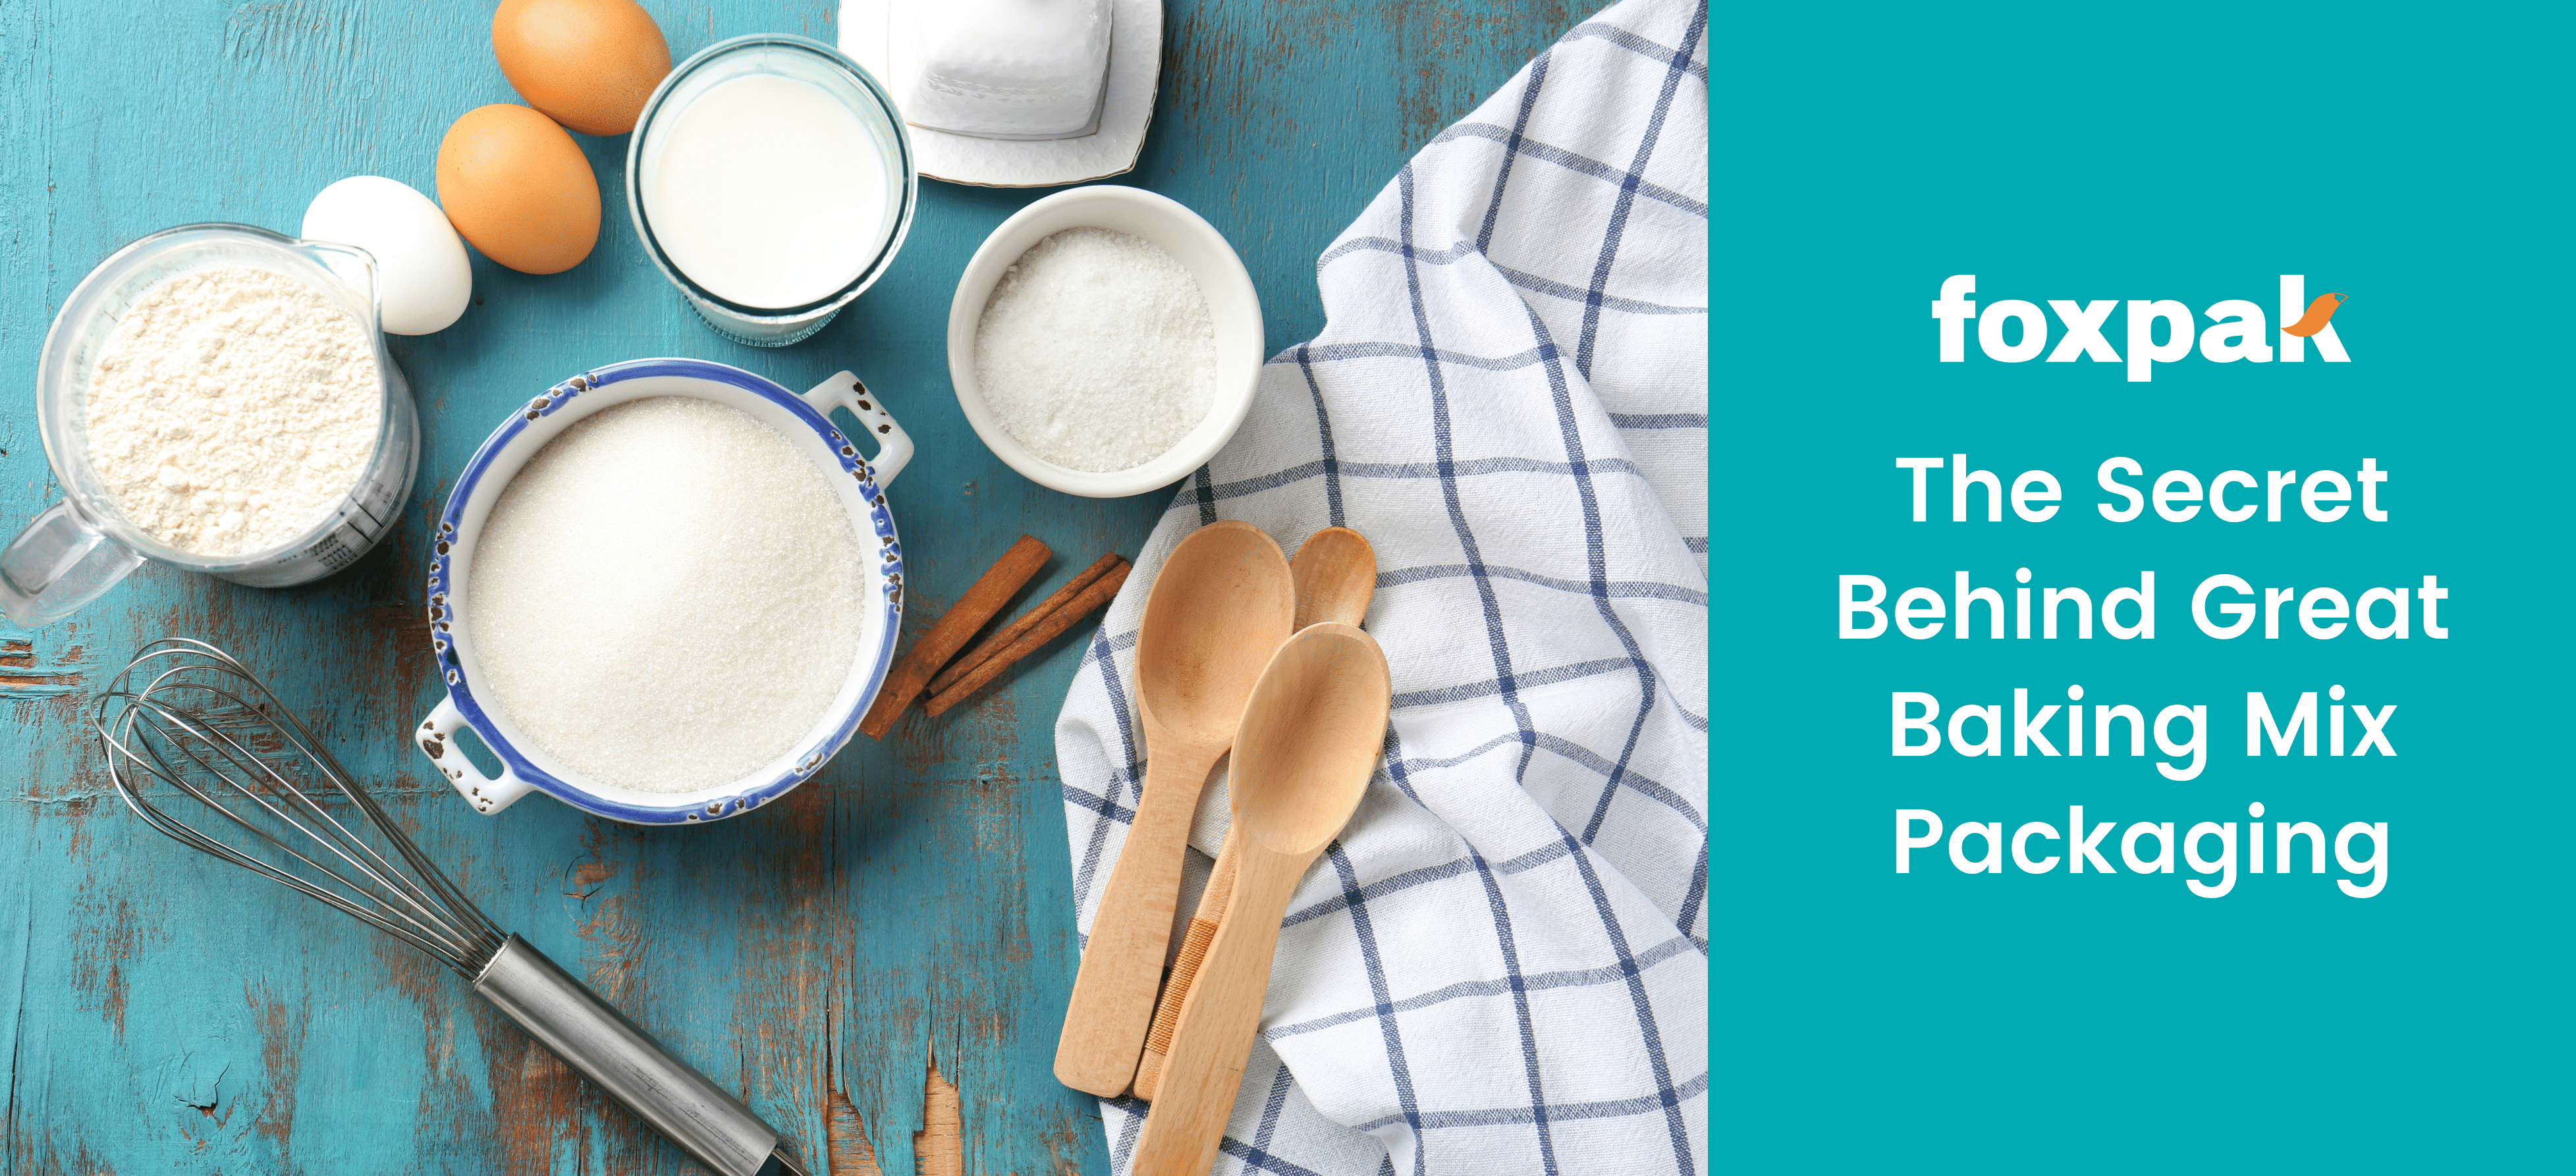 Blog Post Feature Image - Baking Mix Packaging